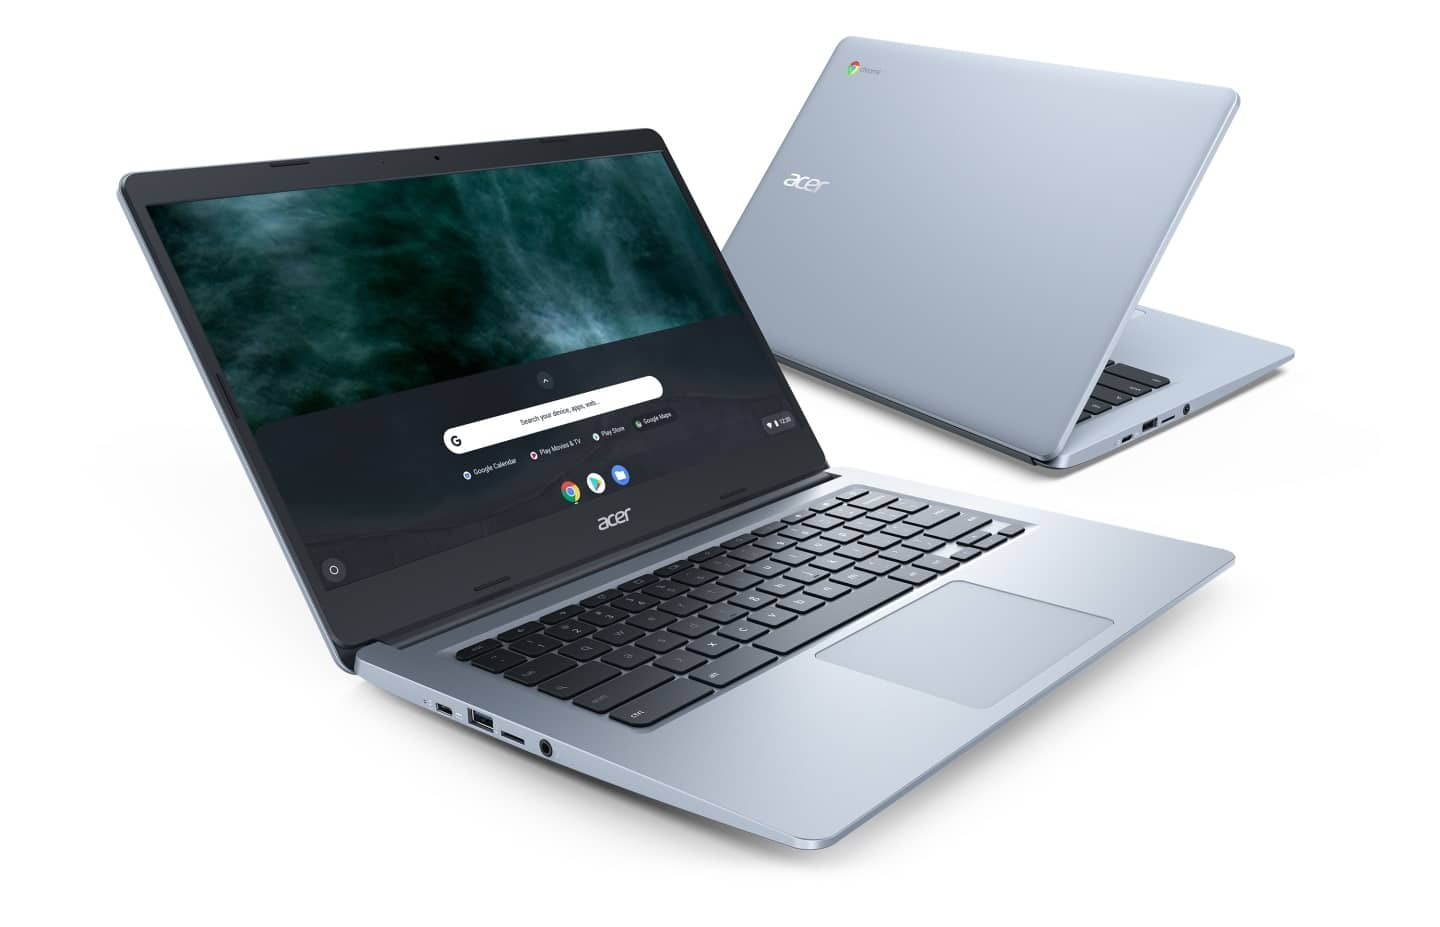 Acer Chromebook 314 CB314 1H CB314 1HT 01 recommended